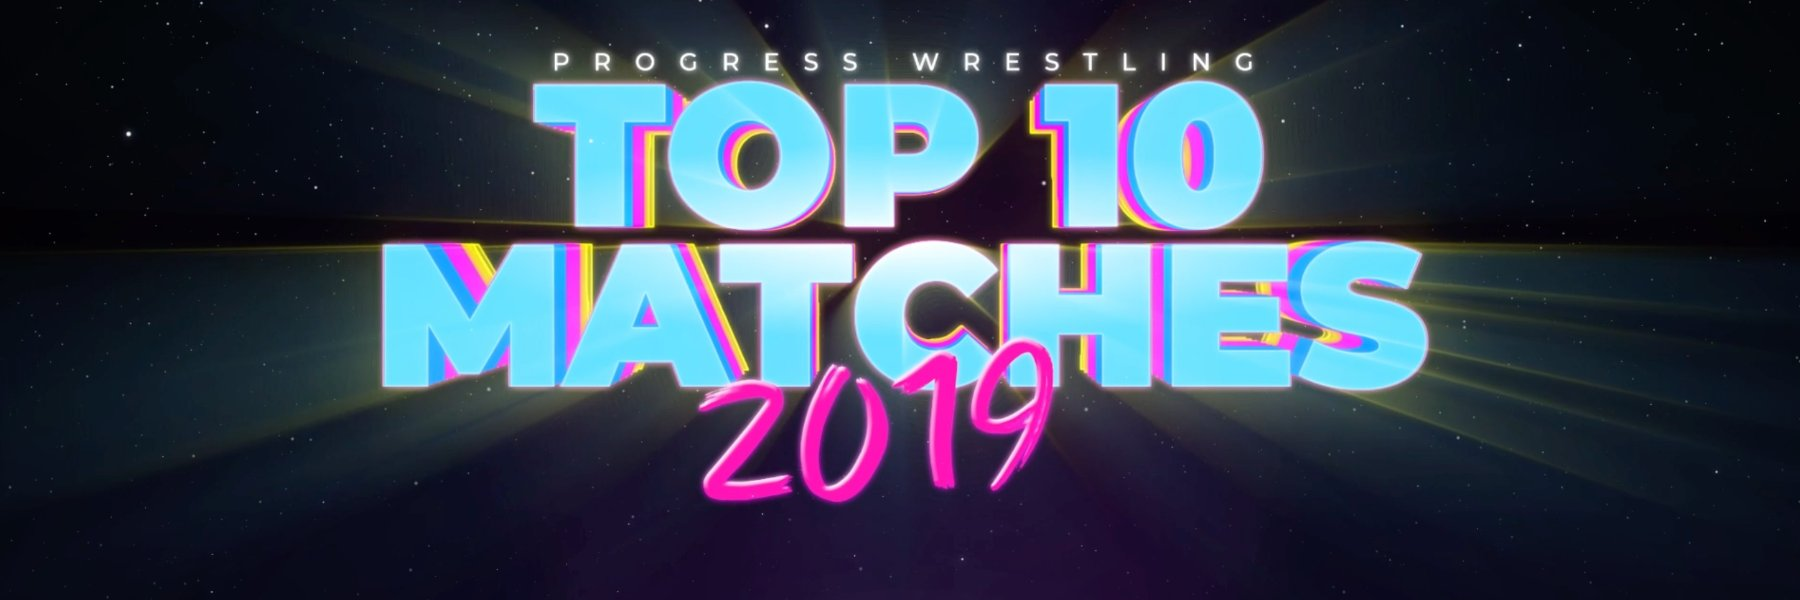 NEW - Top Ten Matches Of 2019